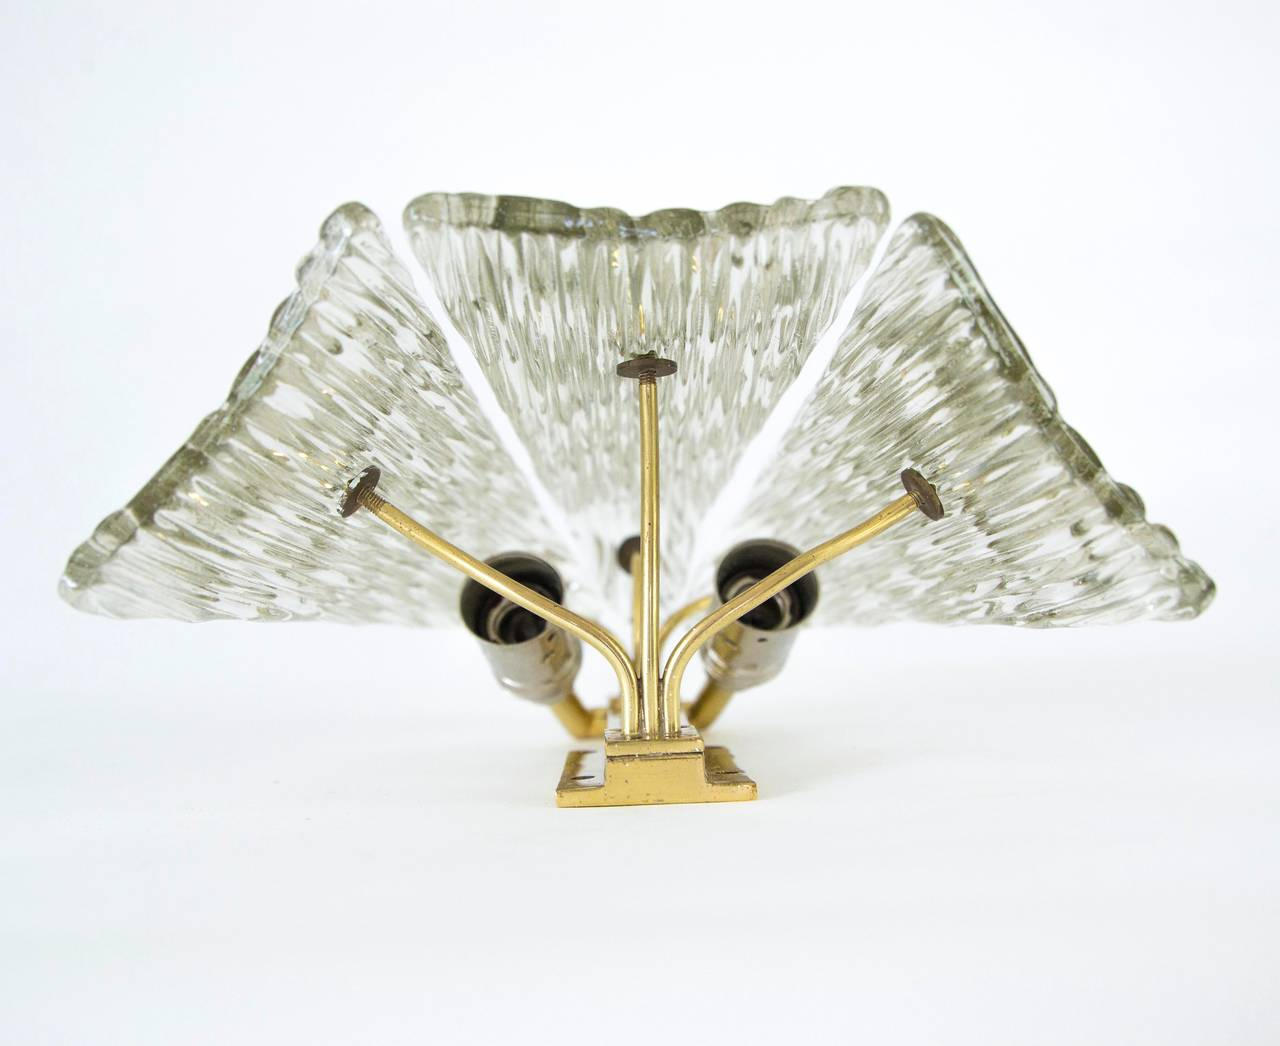 One of Three Textured Glass And Brass Wall Sconces by J.T. Kalmar, 1950s For Sale 3